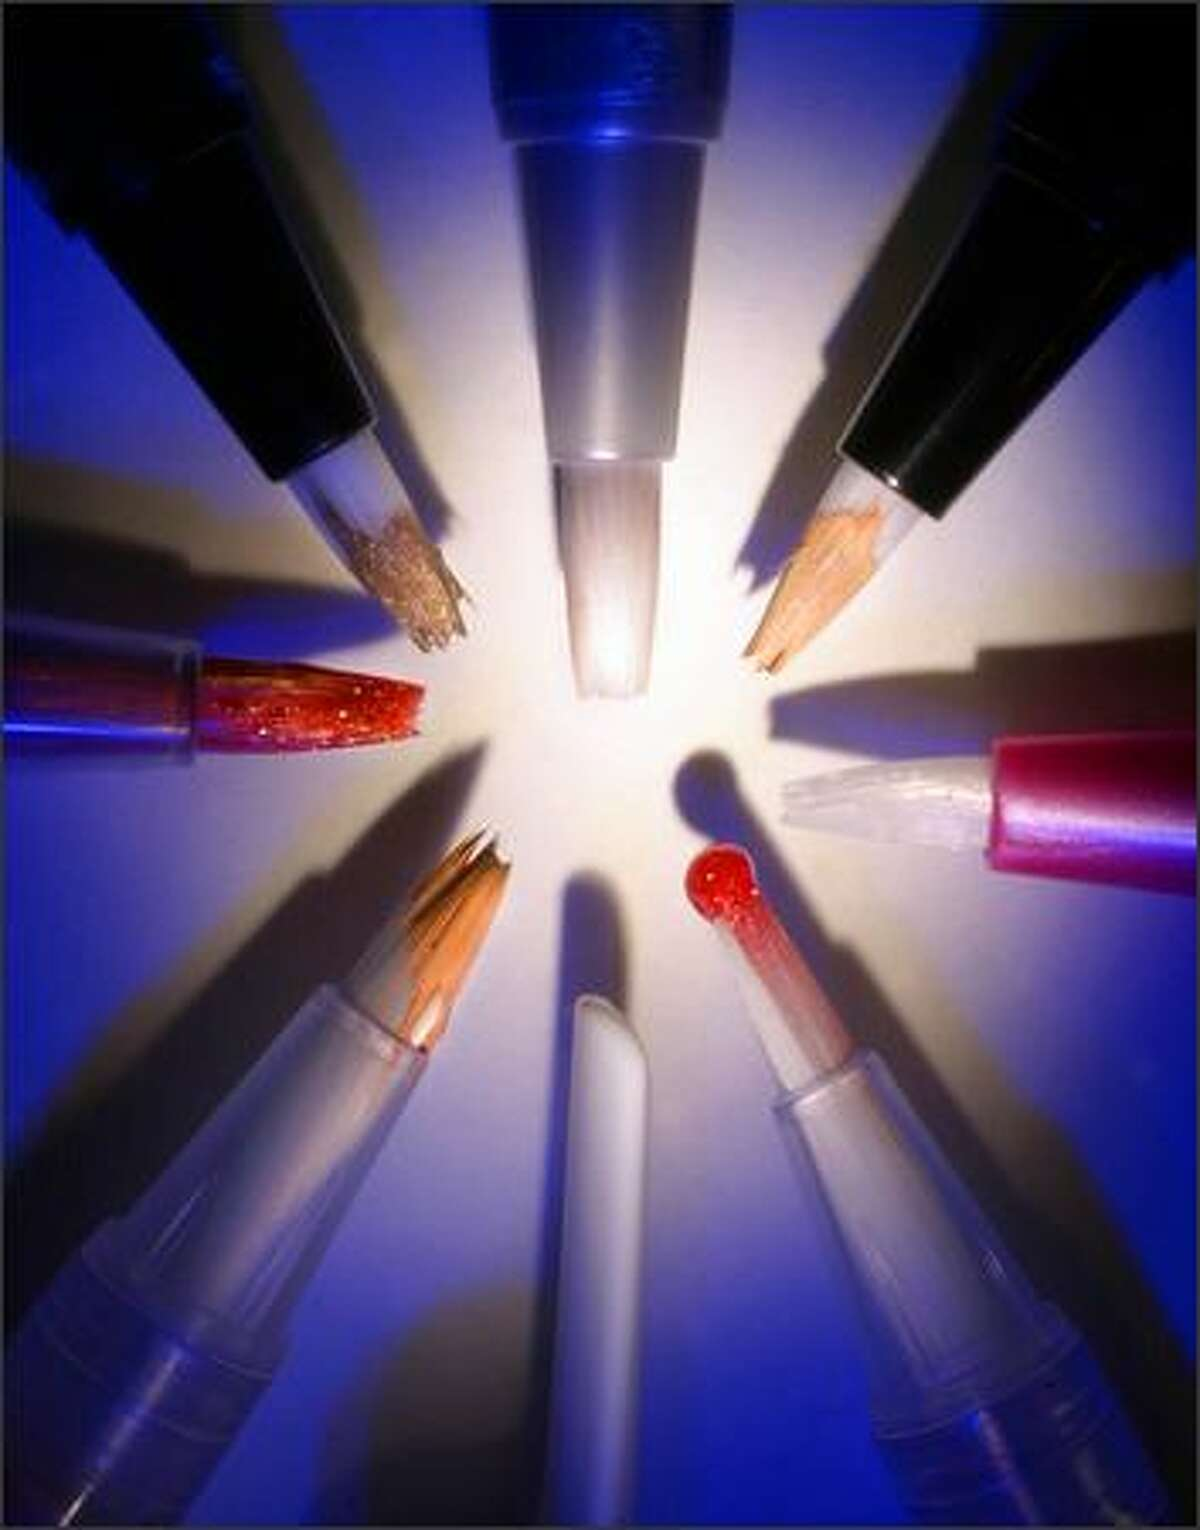 Makeup pens deliver a variety of products, such as eye shadow, lip gloss and concealer.